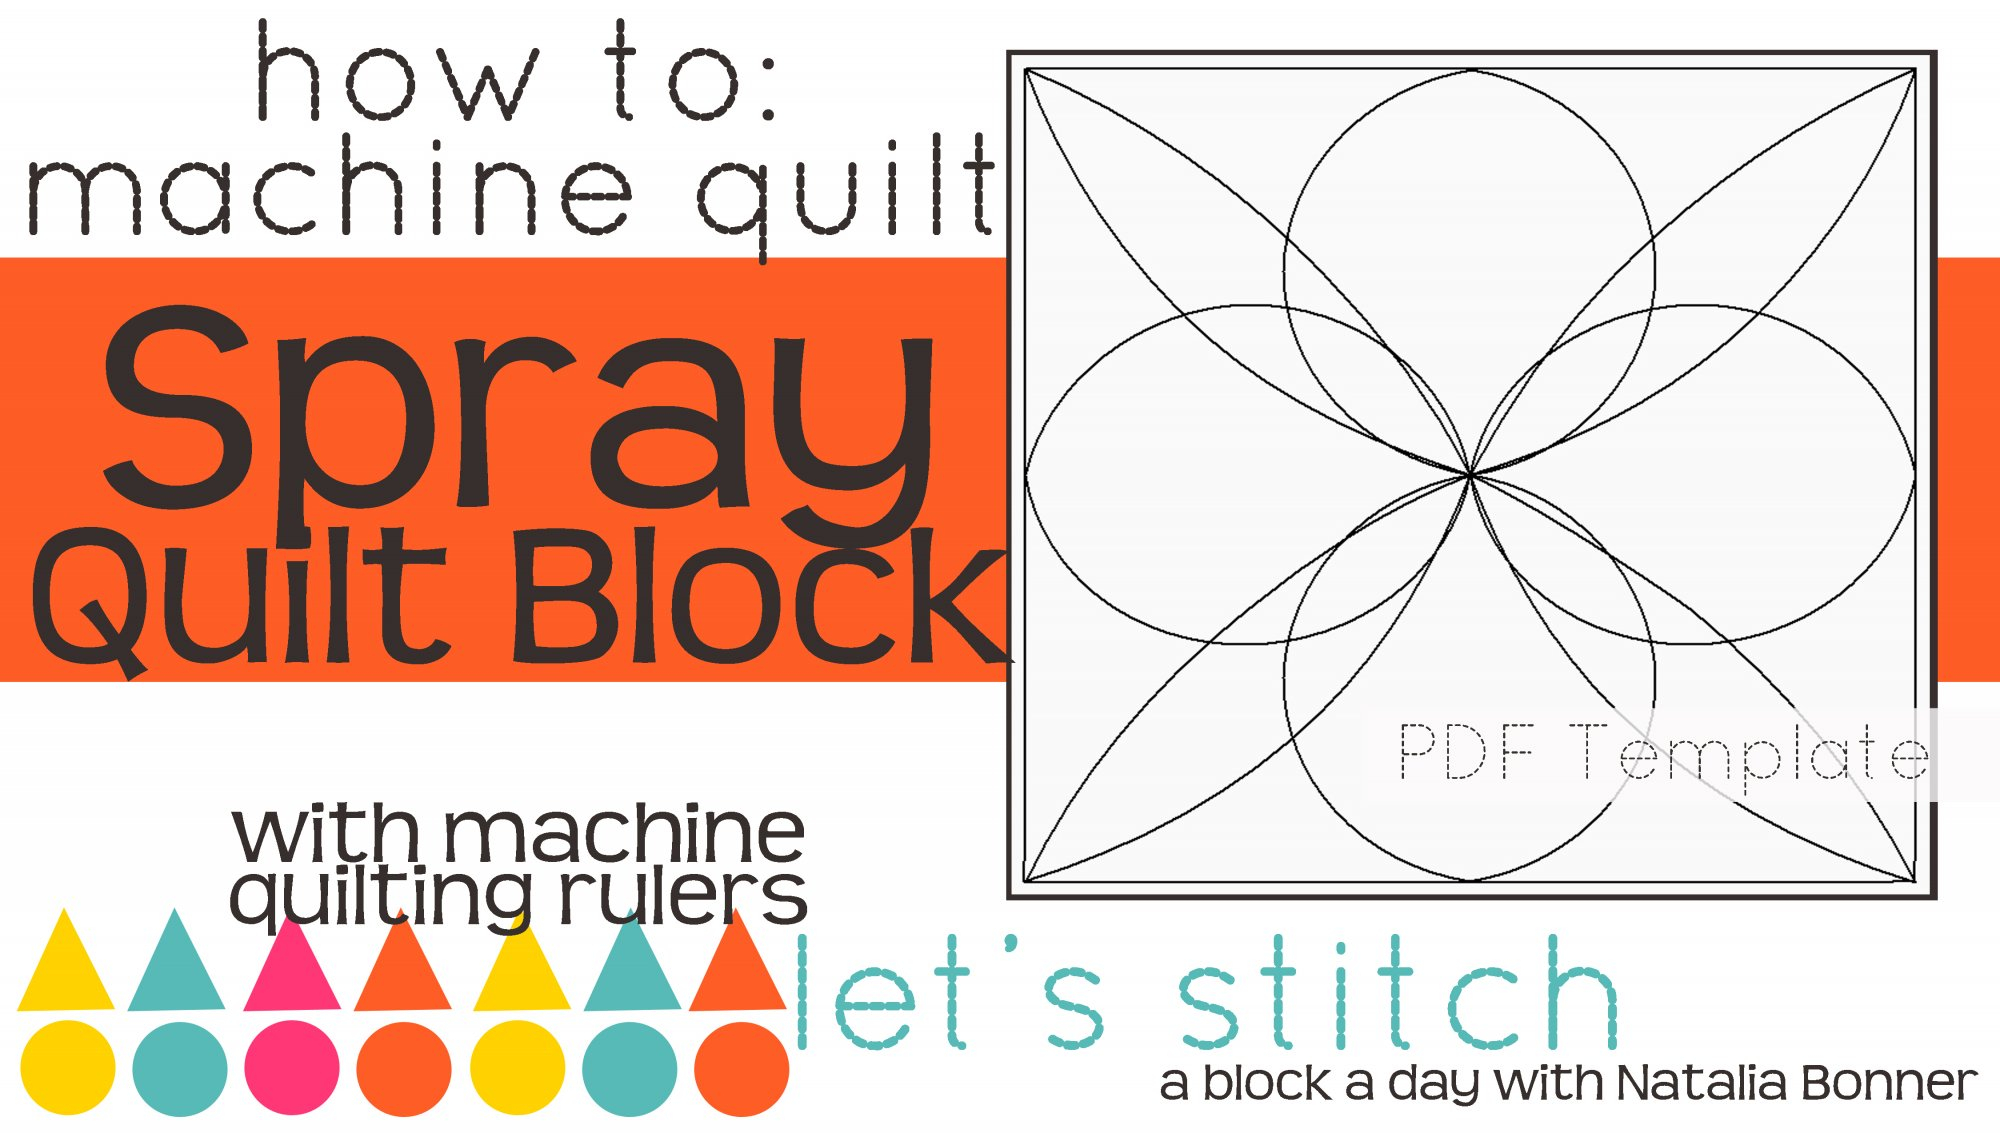 Let's Stitch - A Block a Day With Natalia Bonner - PDF - Spray